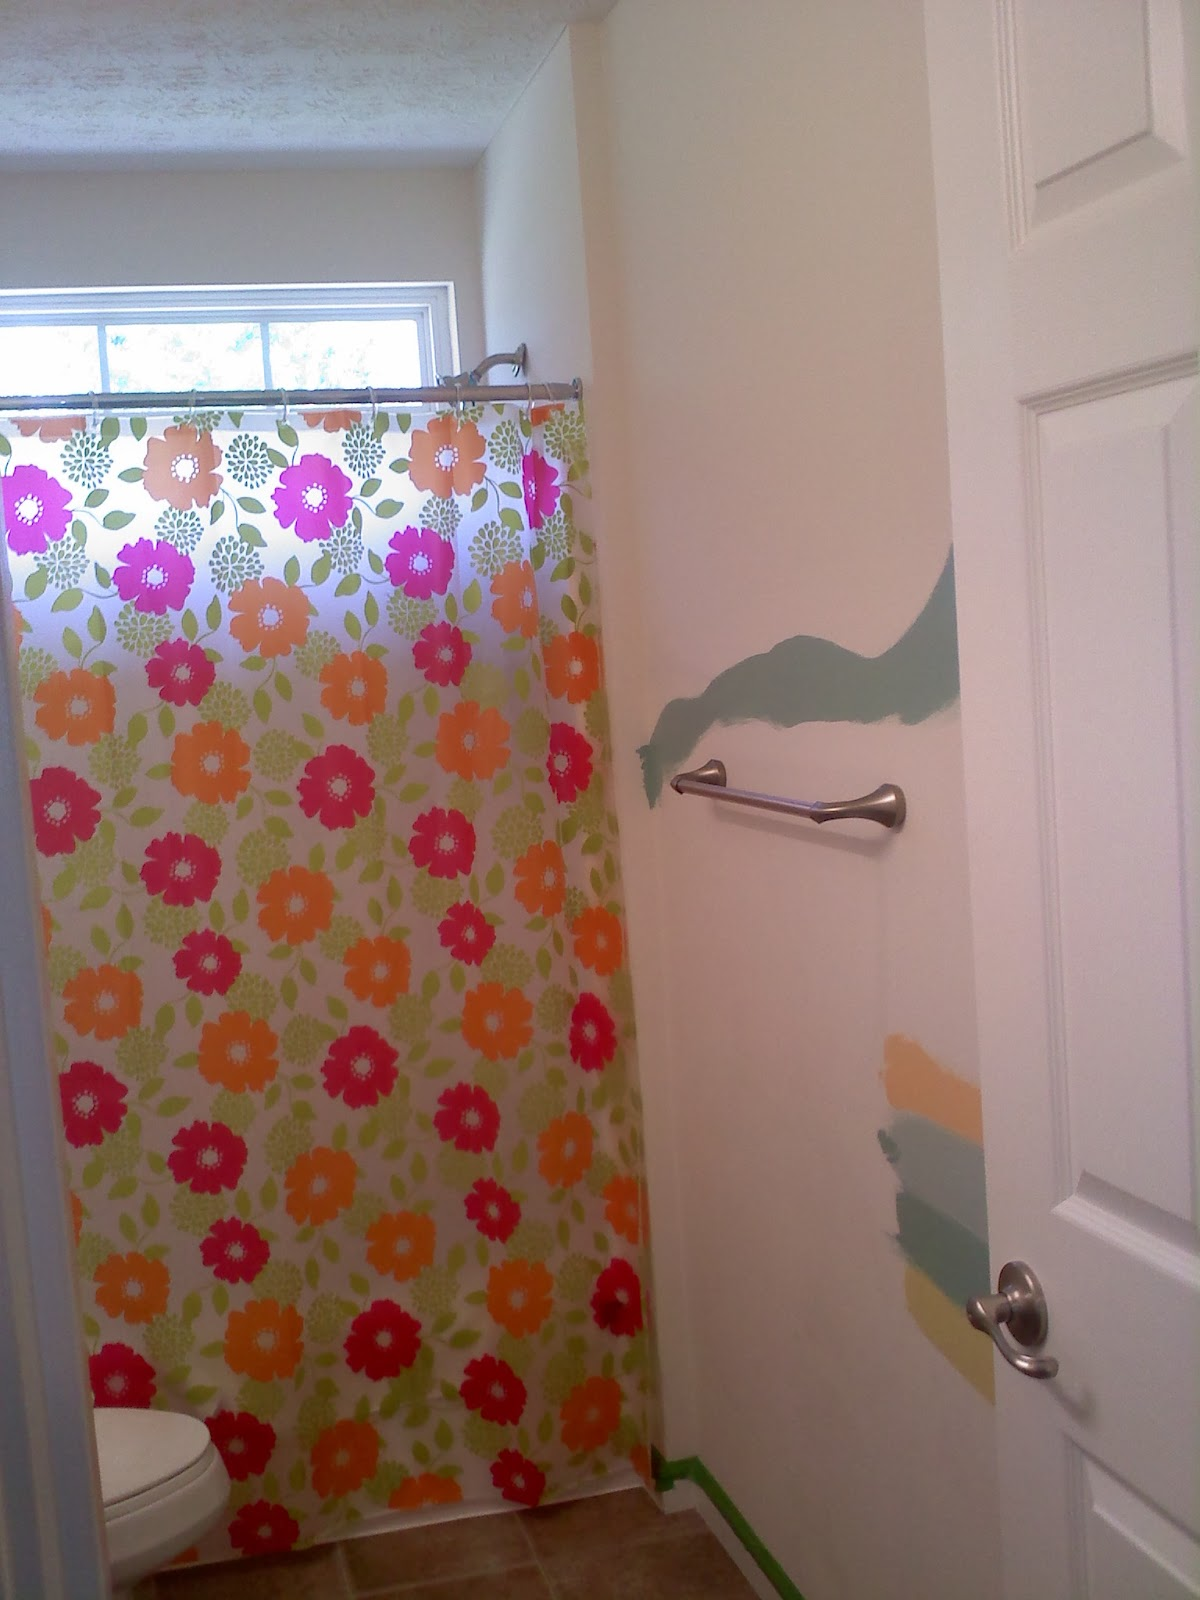 60 pounds of pancakes simple kids bathroom makeover - Simple kids bathroom ...